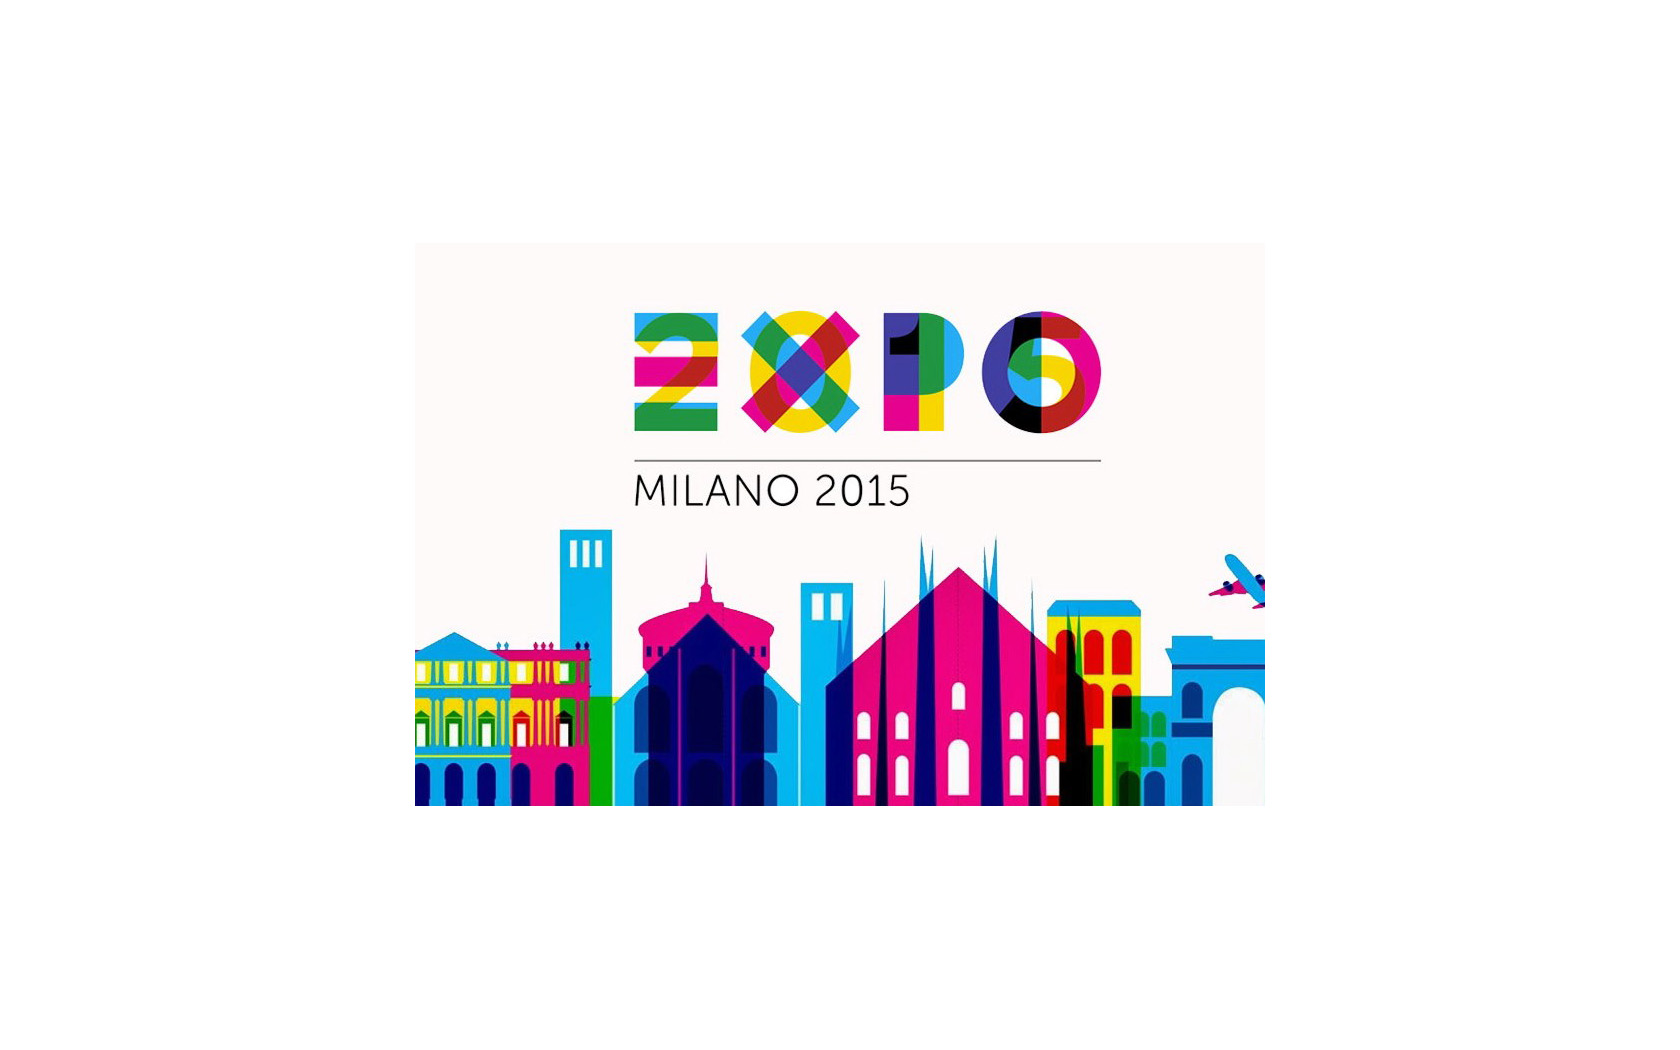 As a preparation for the 2015 EXPO in Milano, a competition was set up in 2012 for a small pavillion, a physical presence of the future event in the inner city.